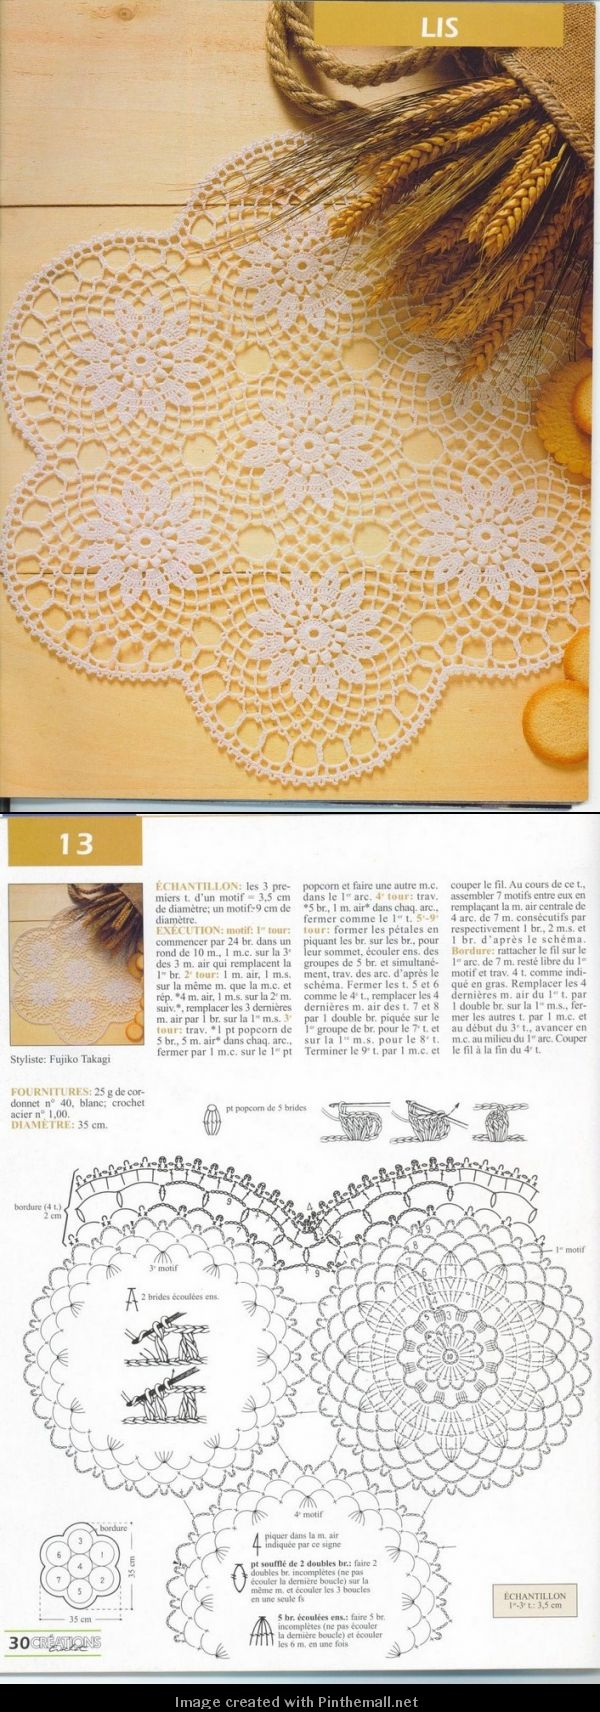 Table doily - created via http://pinthemall.net